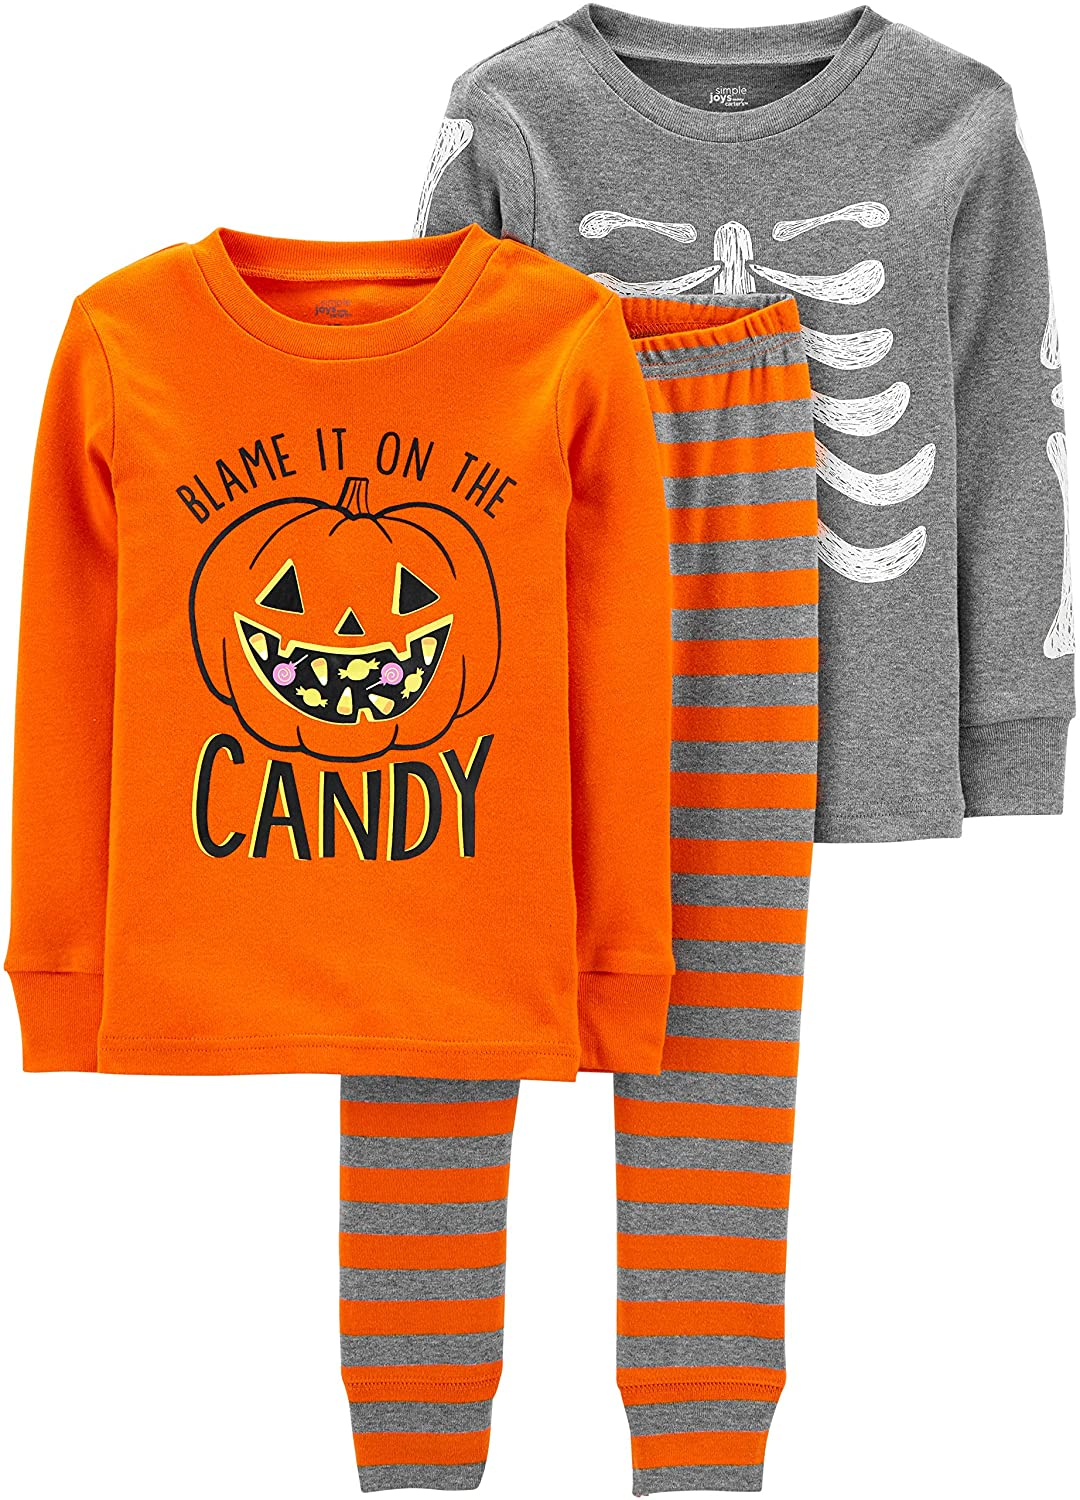 Simple Joys by Carter's Baby and Toddler 3-Piece Snug-Fit Cotton Halloween Pajama Set